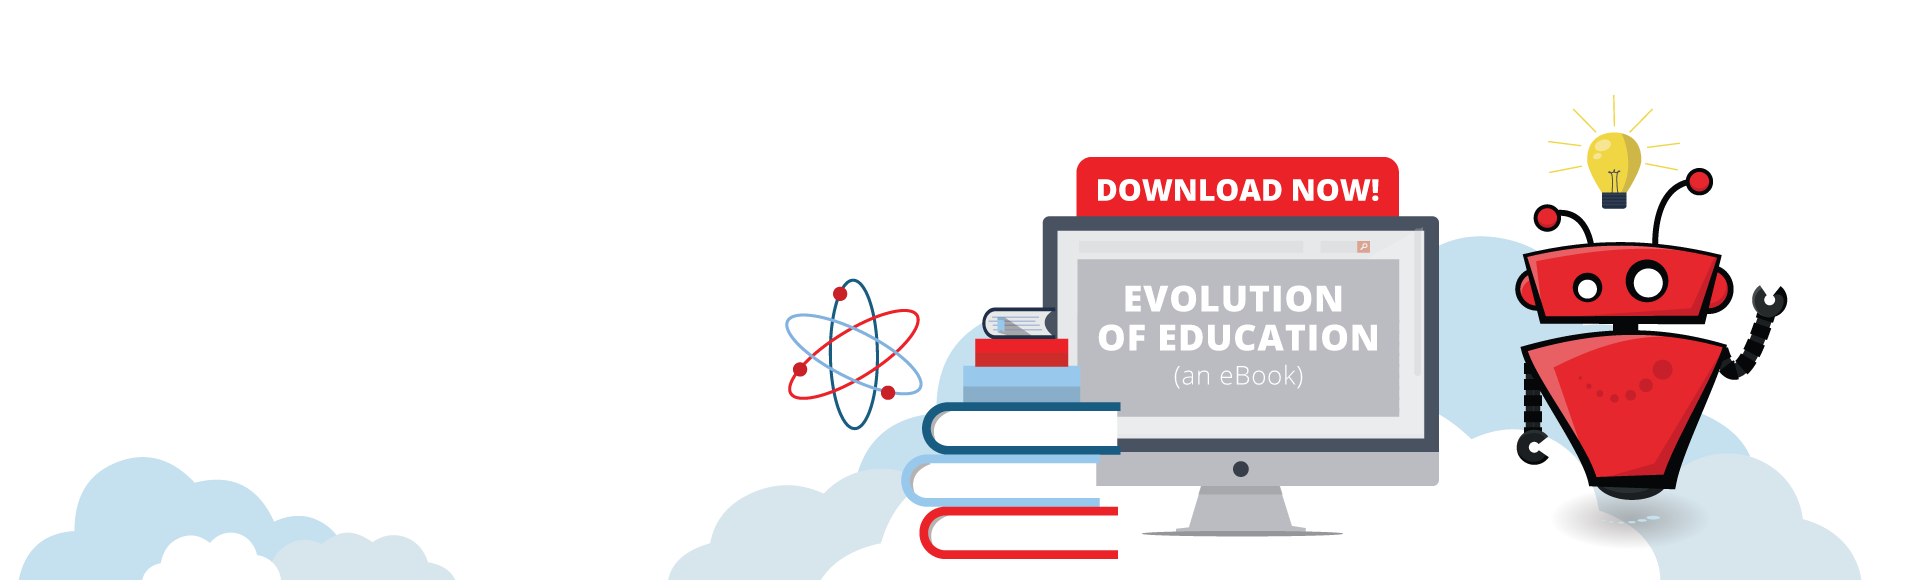 education ebook banner